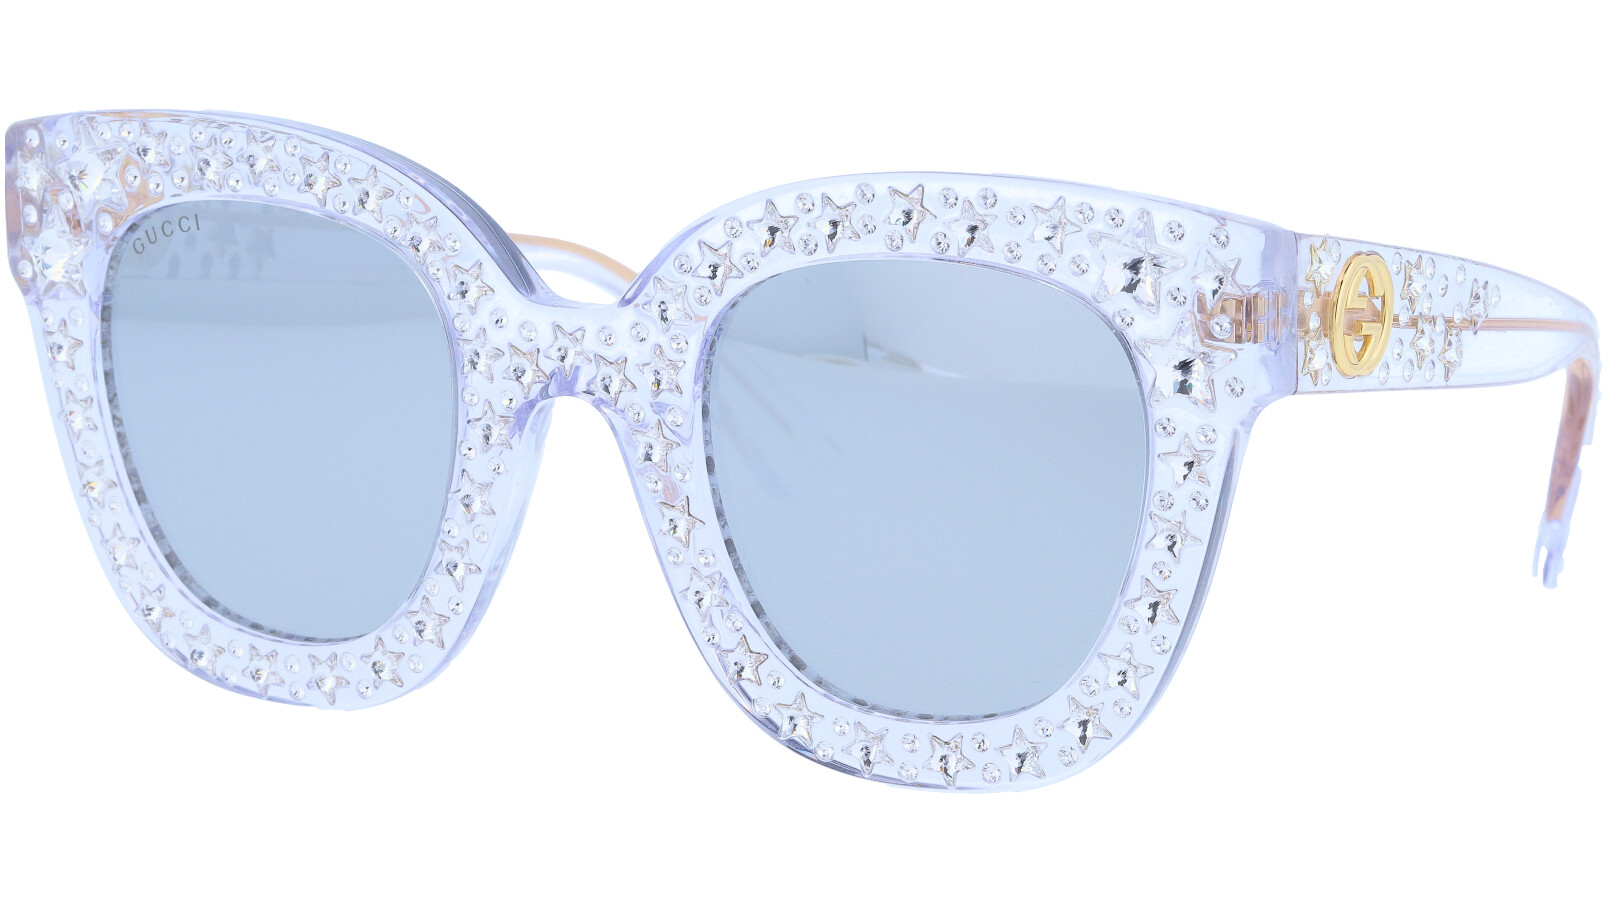 GUCCI GG0116S 001 49 CRYSTAL Sunglasses